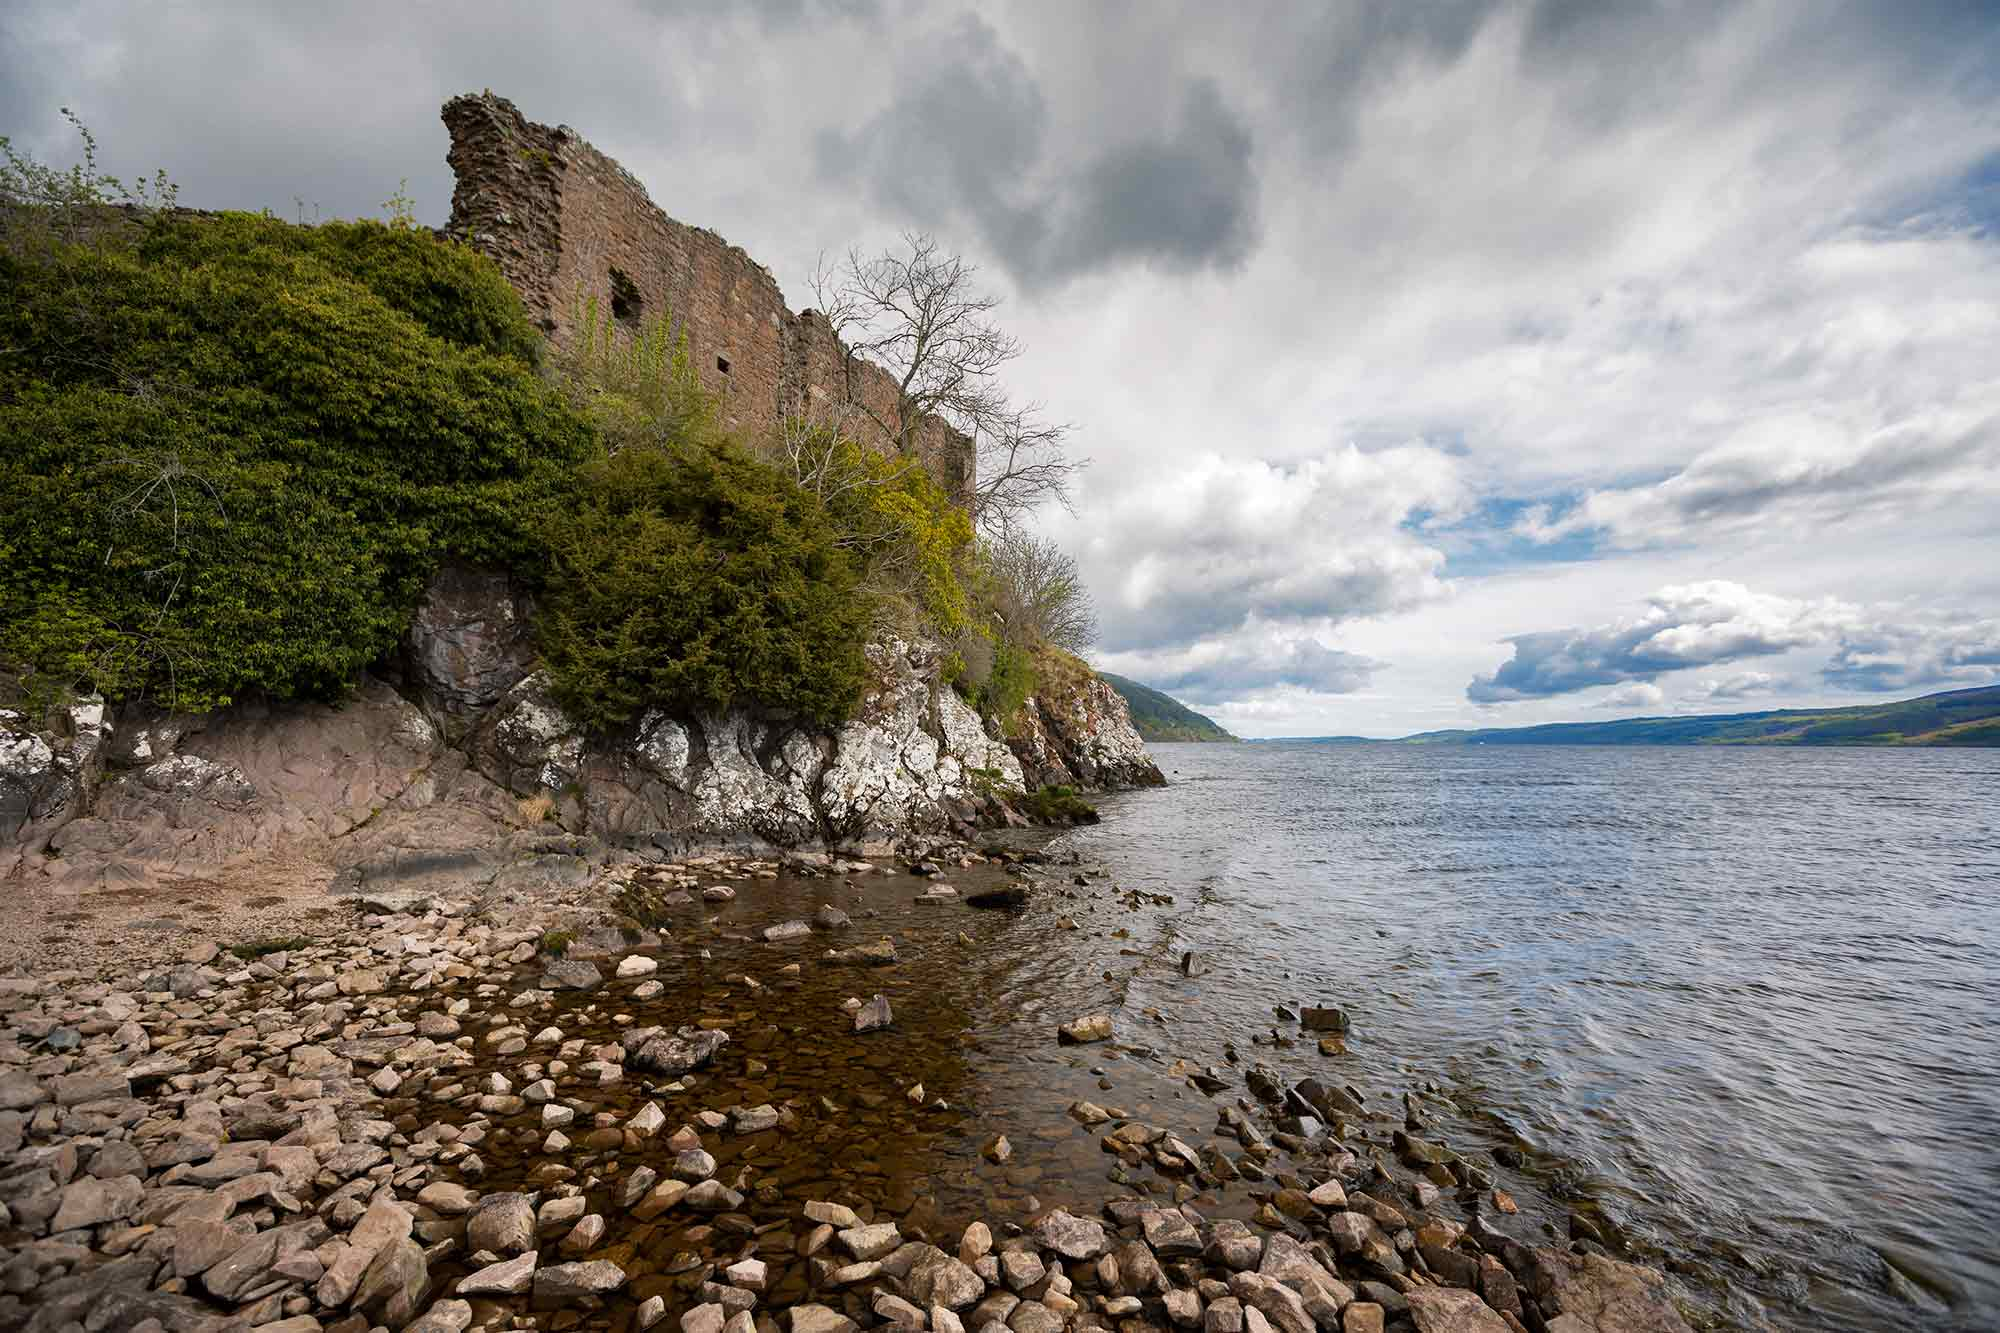 Urquhart Castle sits beside Loch Ness in the Highlands of Scotland. We expected much more of both, but neither Loch Ness nor the castle really impressed us. © ULLI MAIER & NISA MAIER